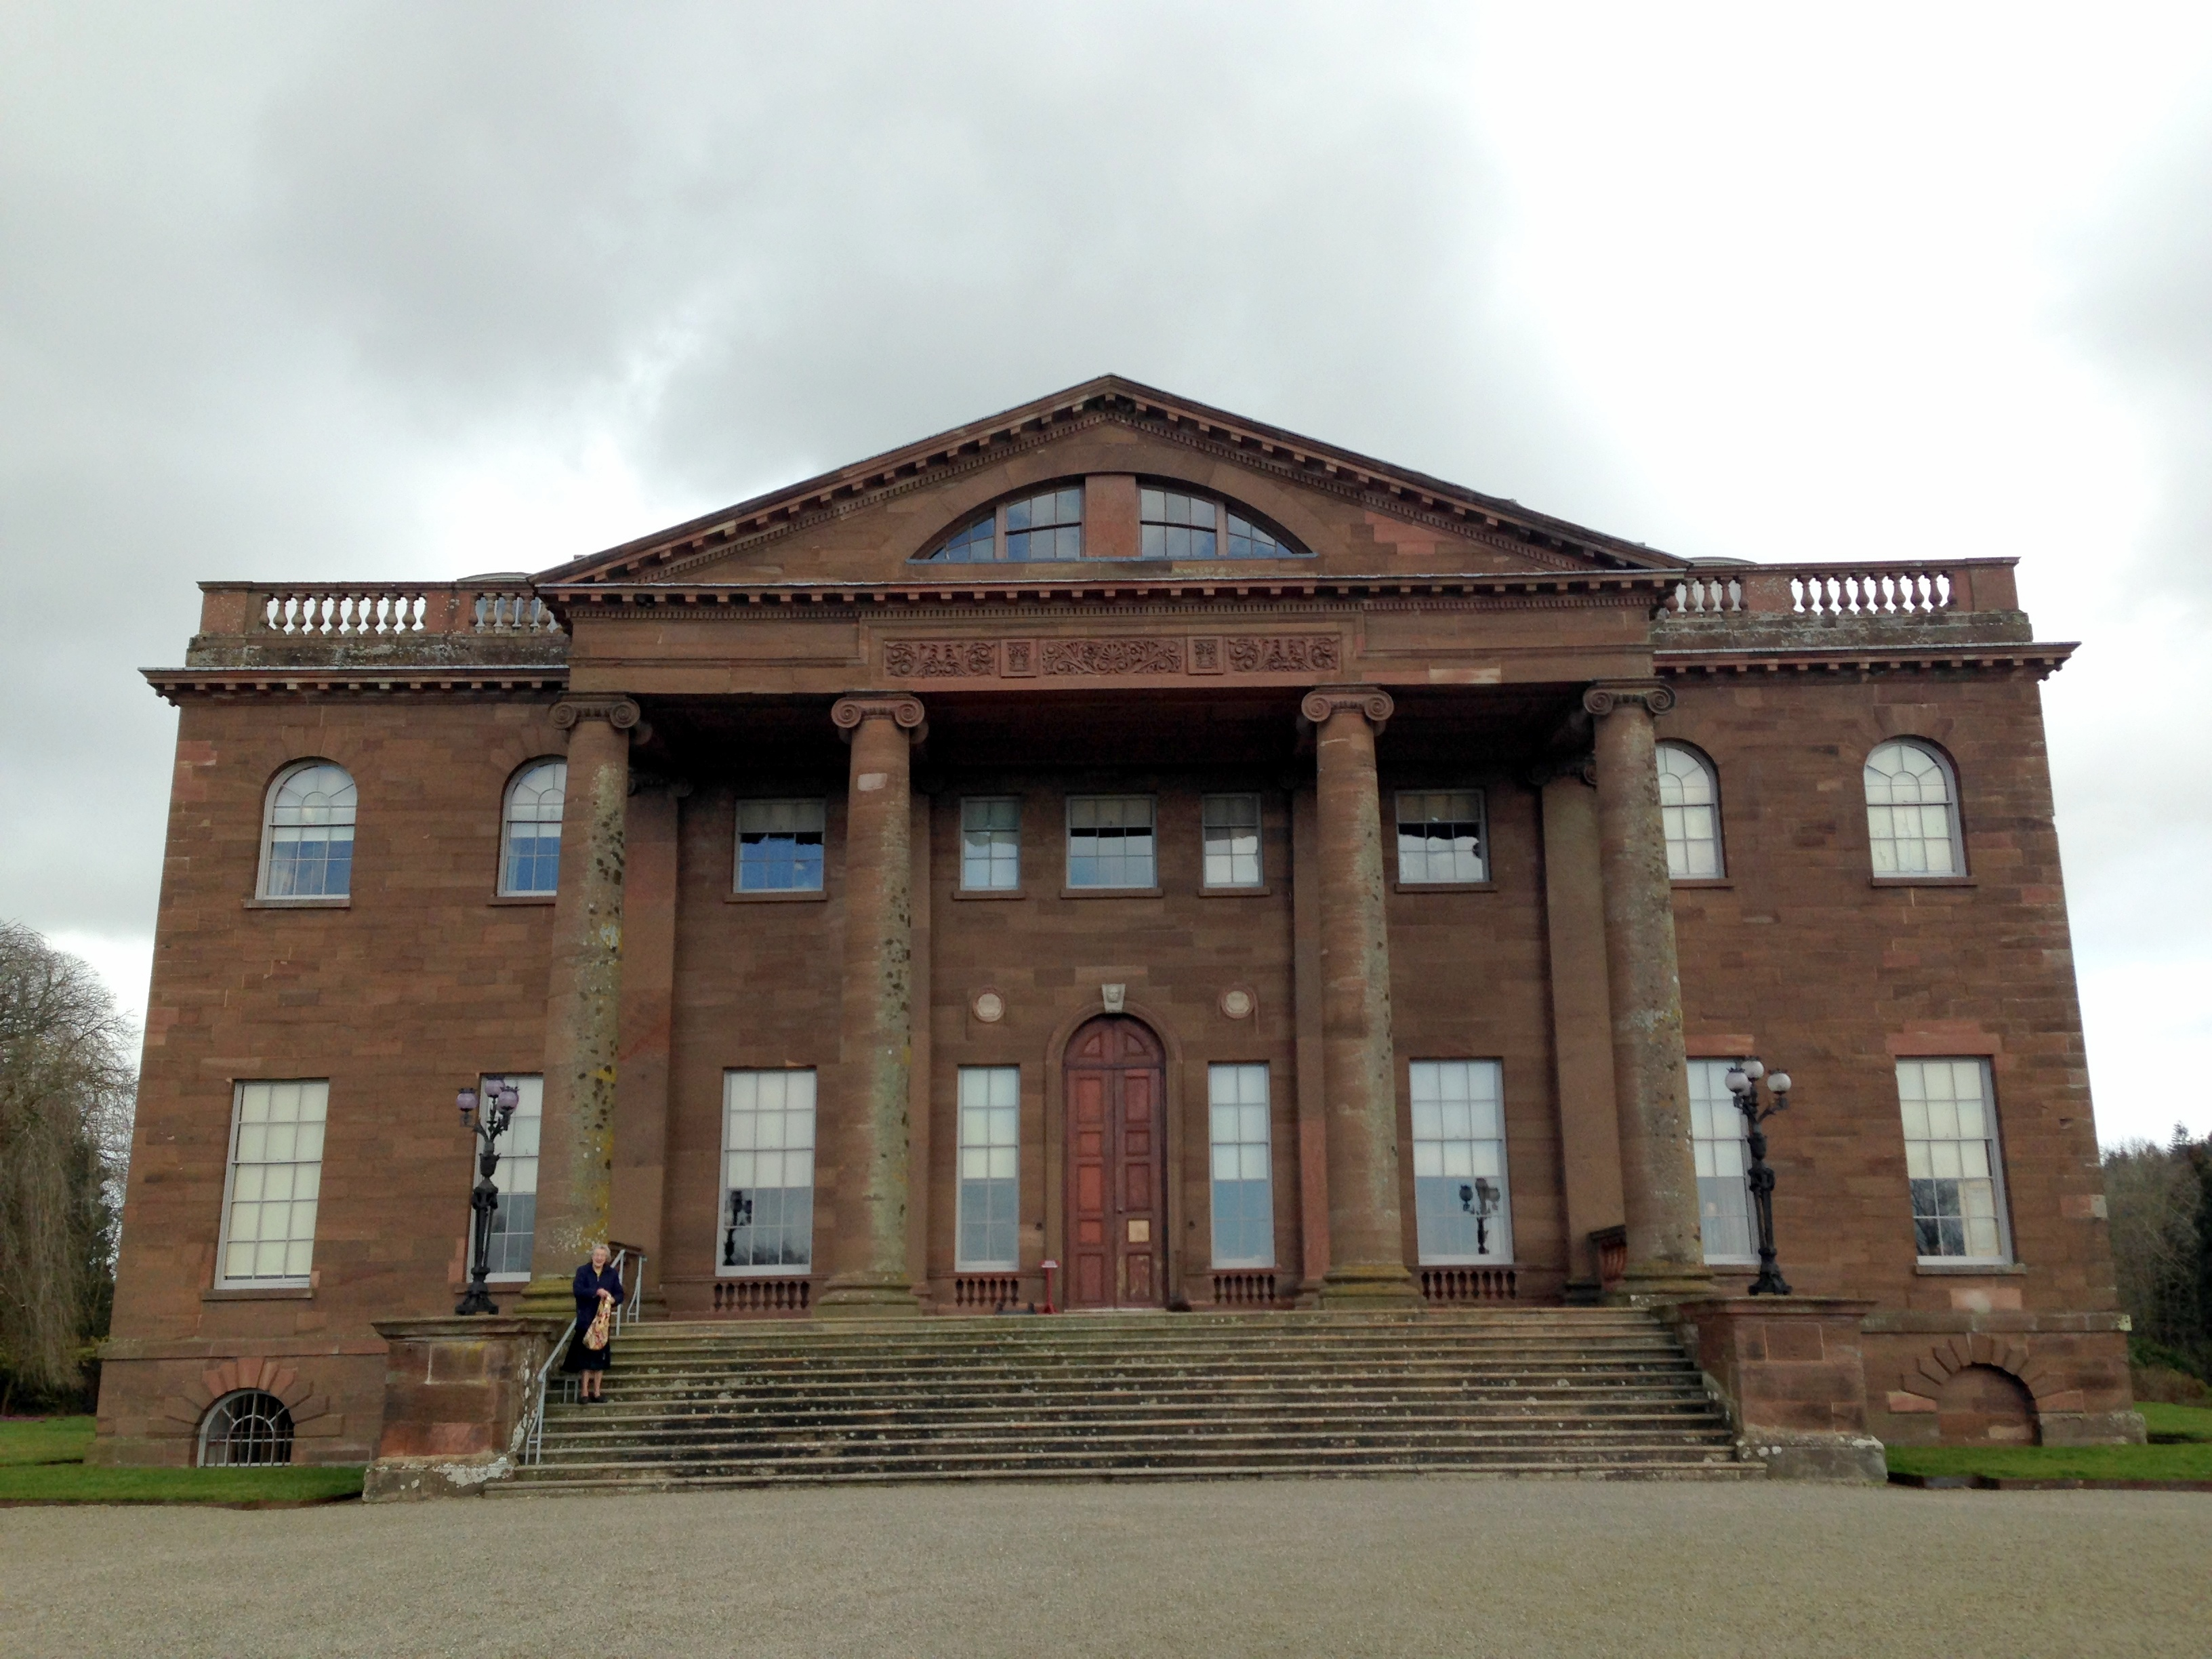 The severe facade of Berrington Hall (with grandmother for scale)